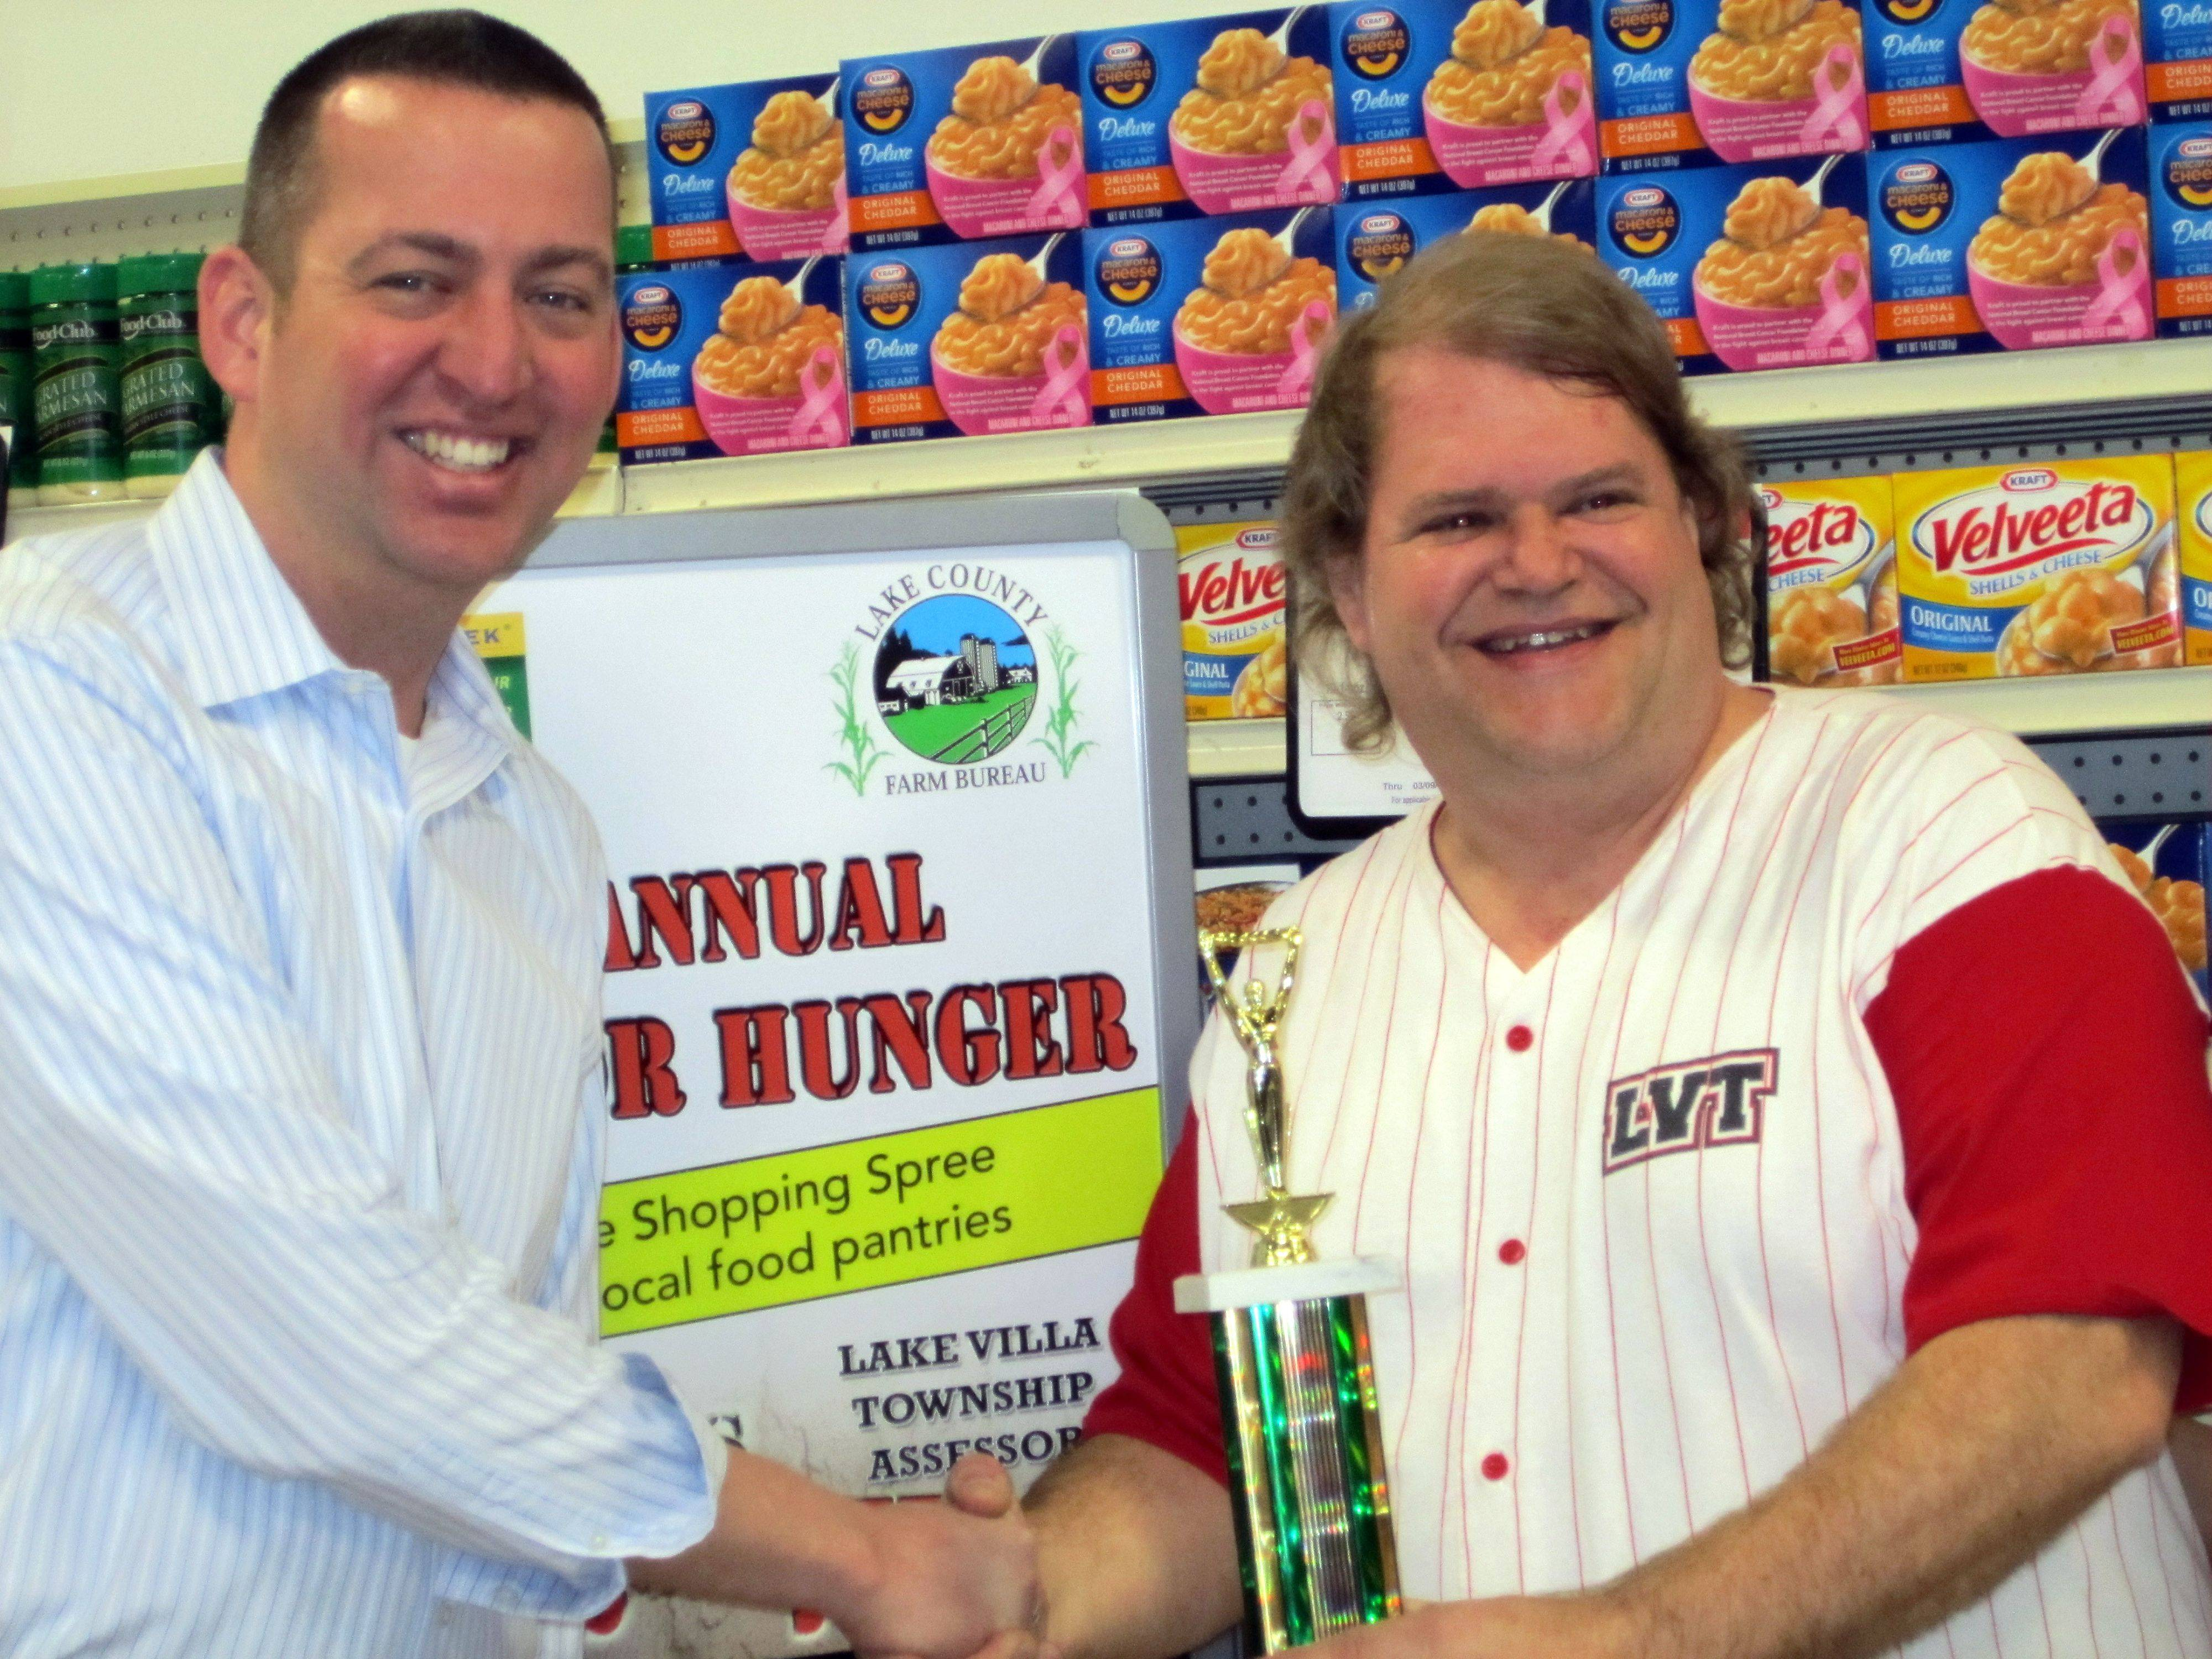 Lake County Farm Bureau Manager Greg Koeppen, left, congratulates Lake Villa Township Assessor Jeff Lee, the winner of this year's Race for Hunger event.